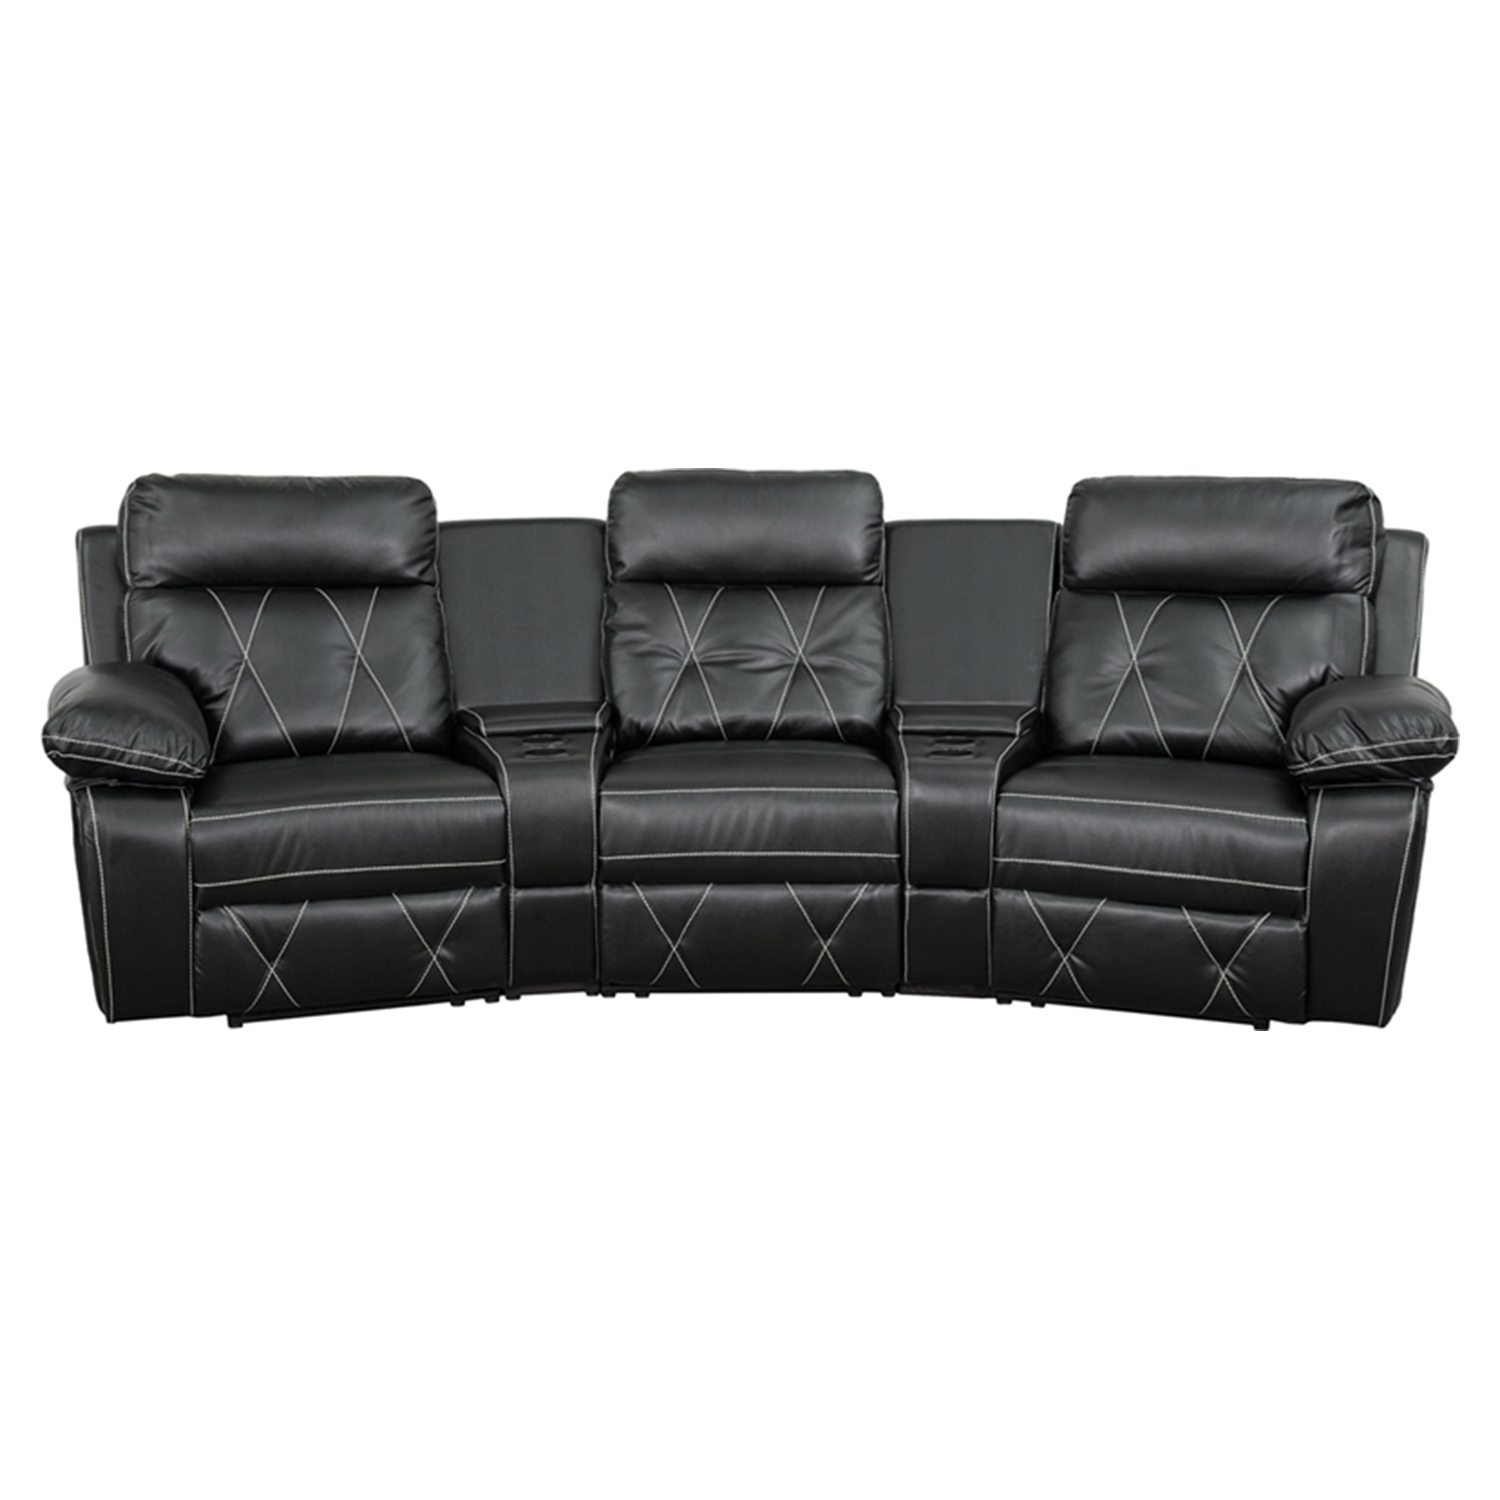 Reel Comfort Series 3-Seat Leather Recliner - Black Curved Cup Holders  sc 1 st  DCG Stores & Home Theater Seating | DCG Stores islam-shia.org